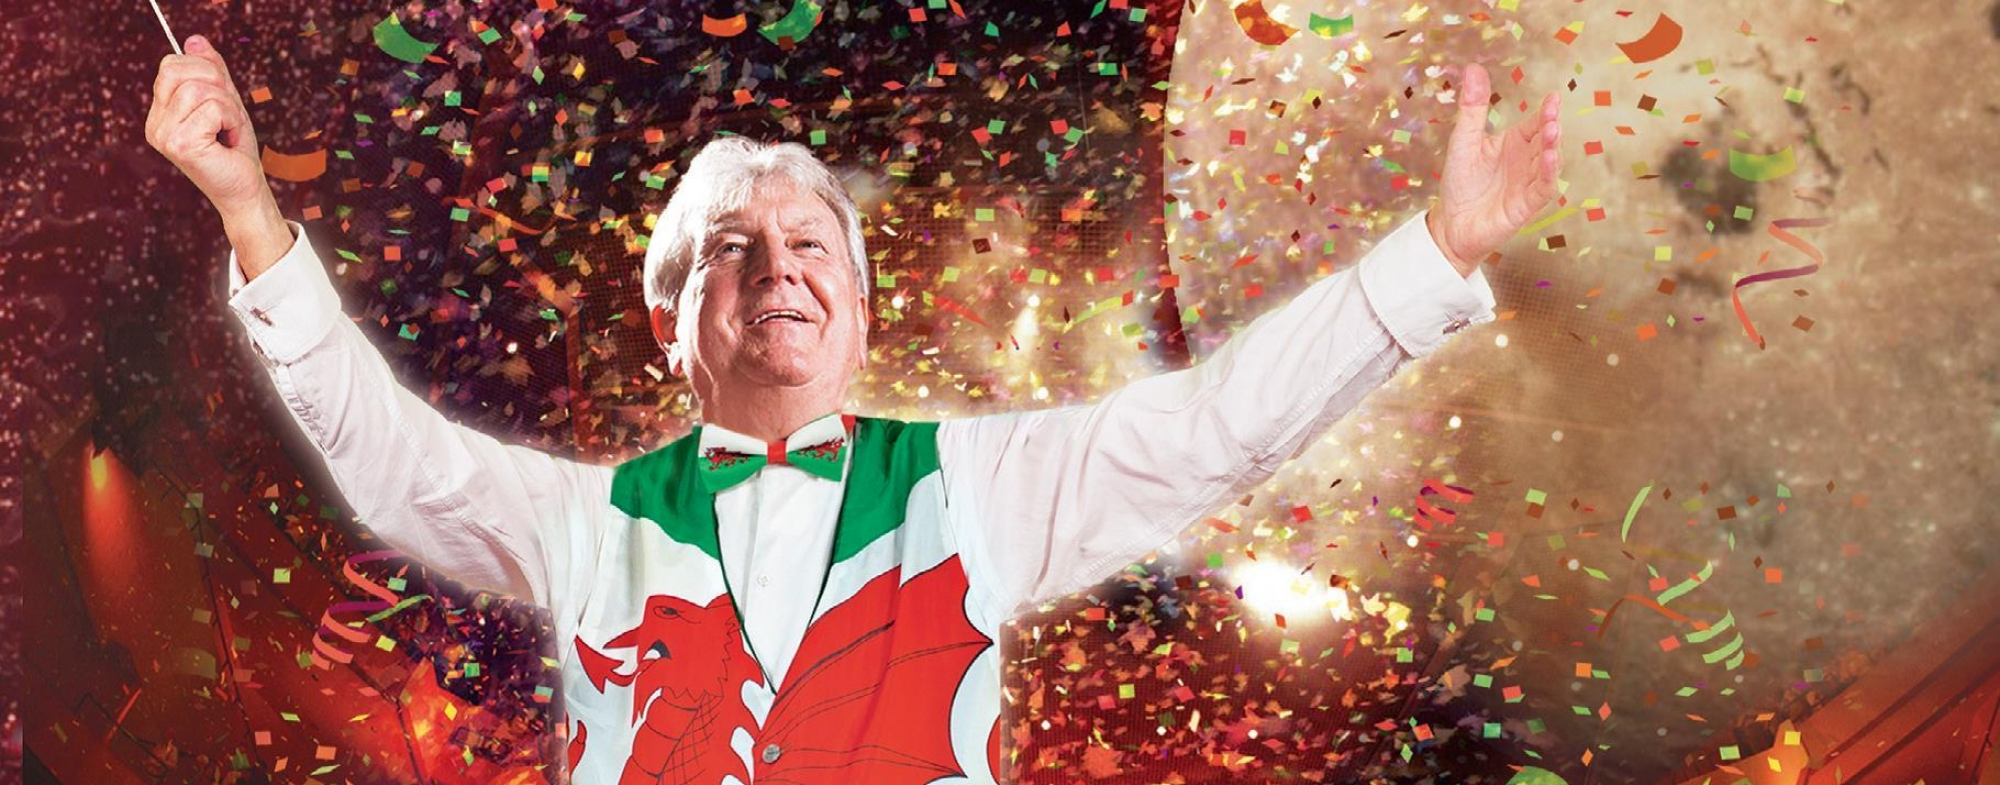 Poster shows a male conductor dresses in a red, white and green waistcoat, with planets, balloons and Welsh flags.